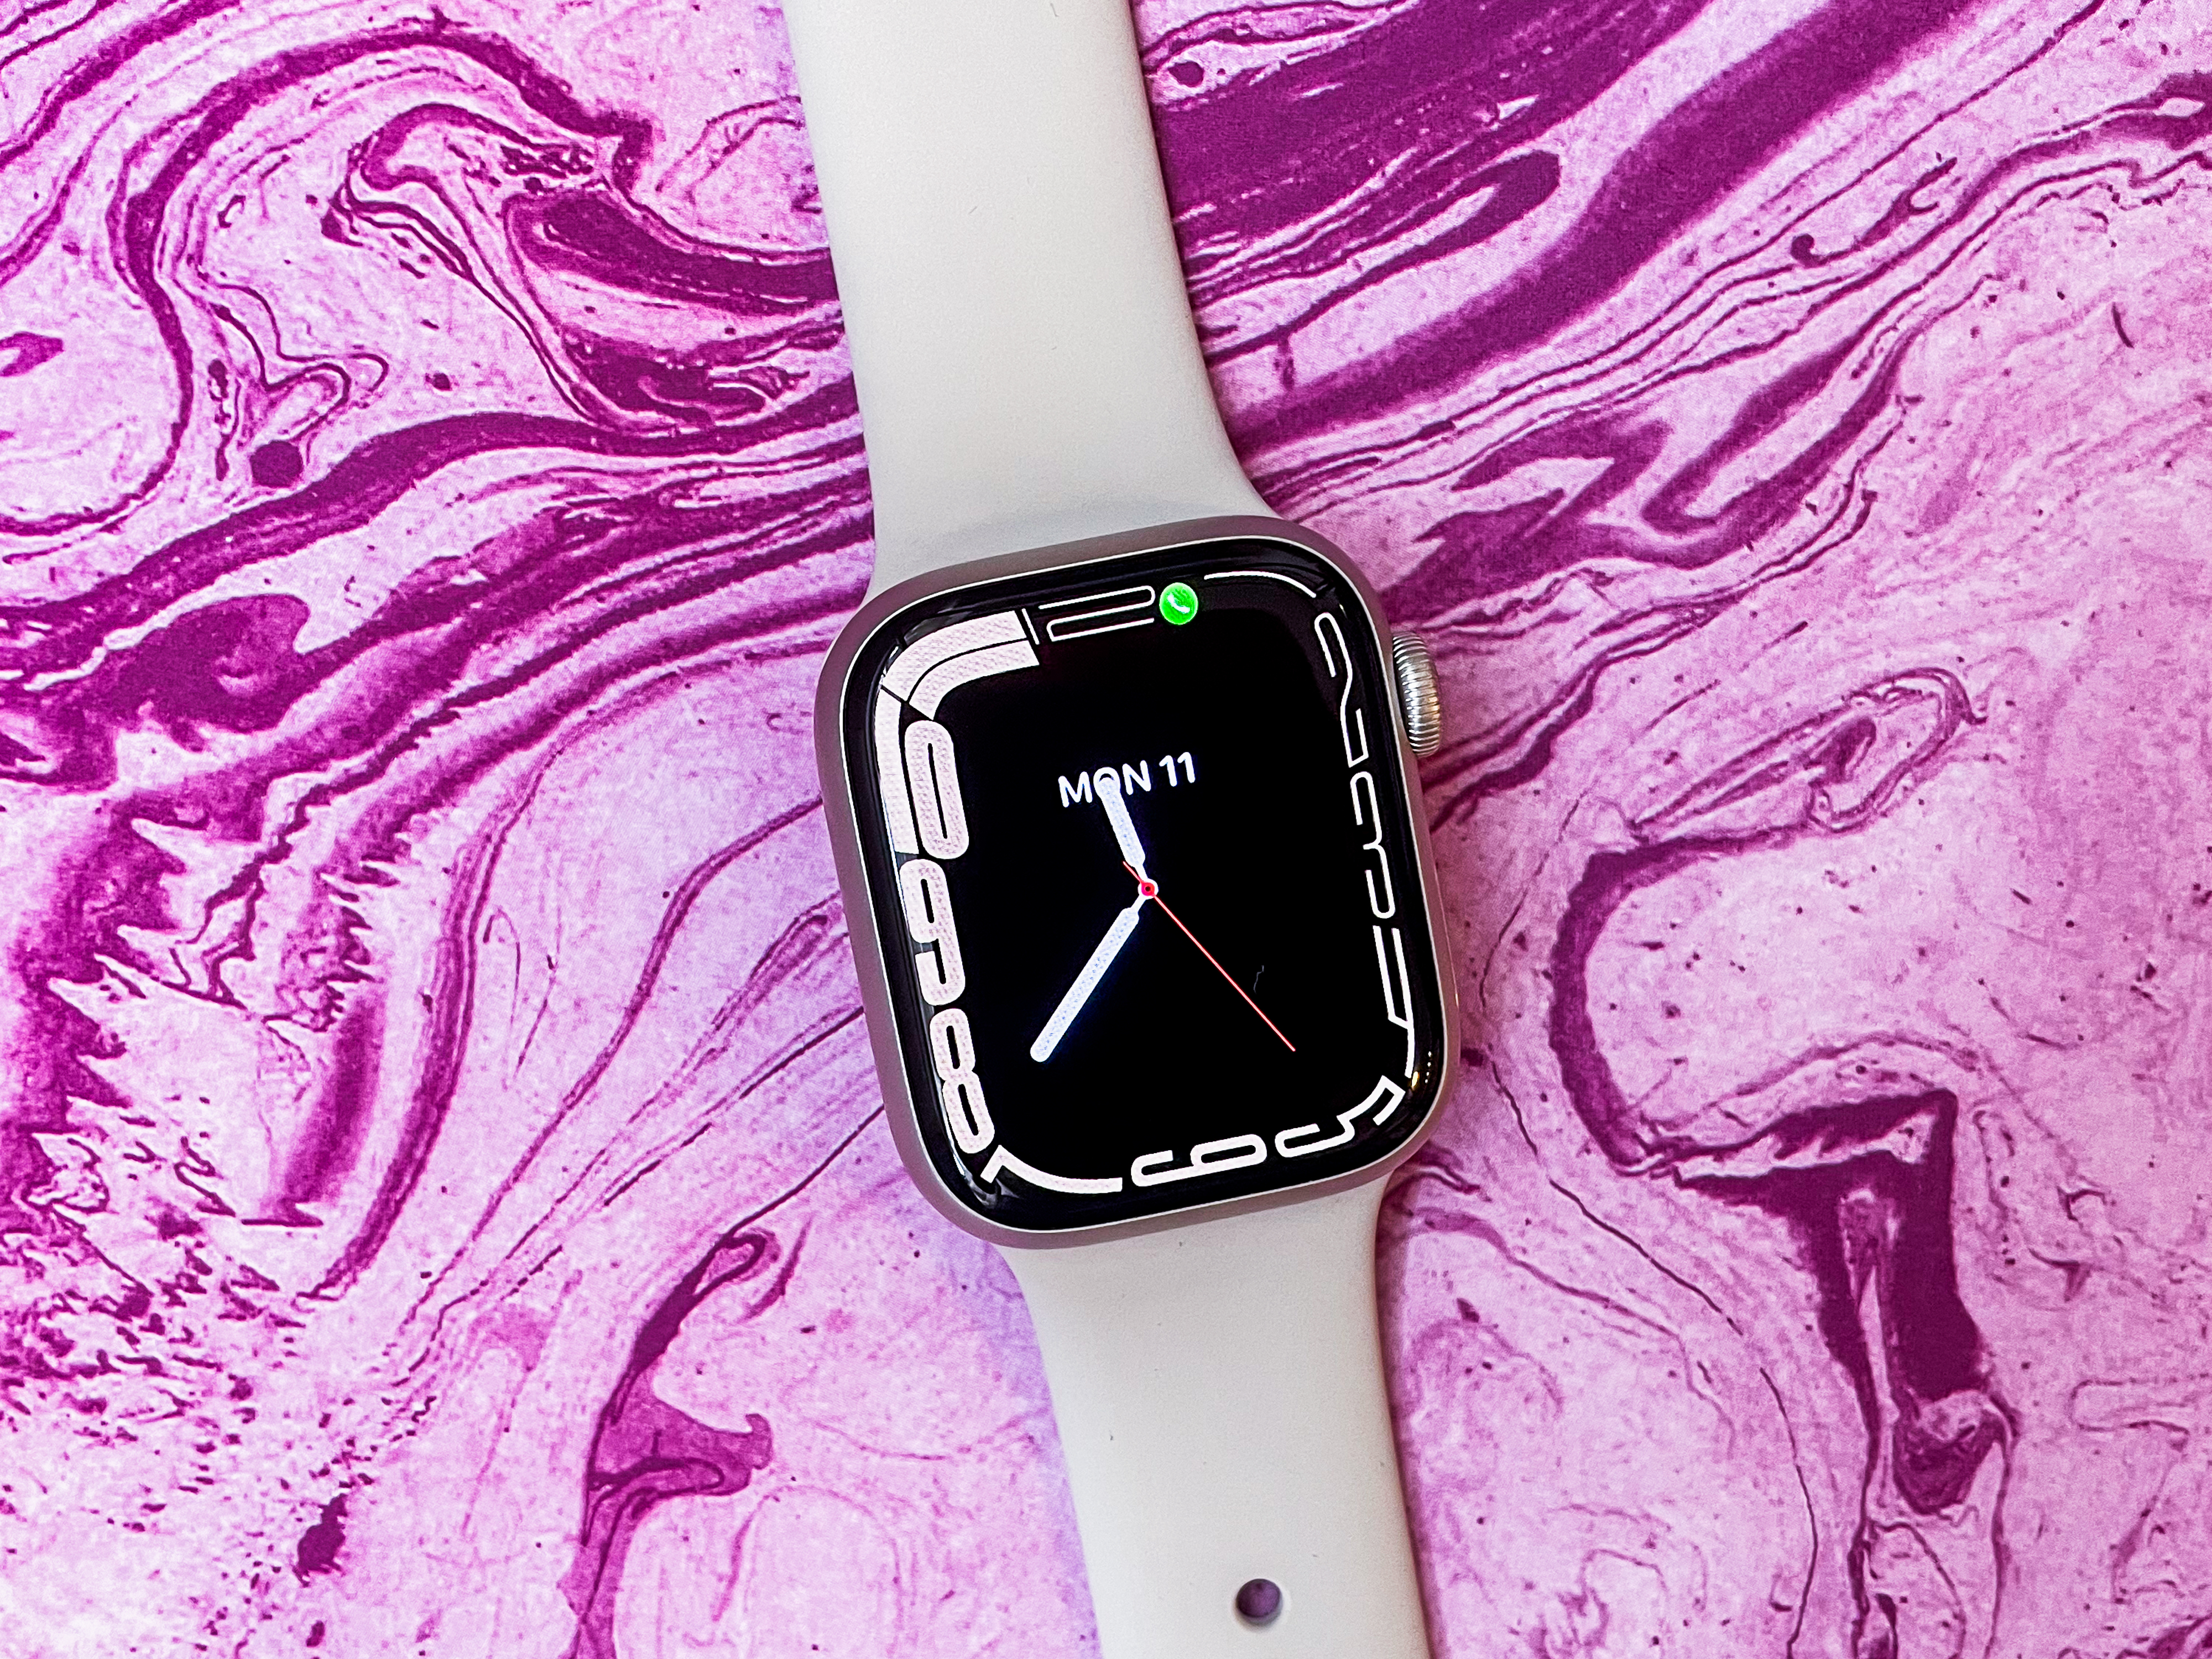 apple-watch-series-7-cnet-review-2021-001